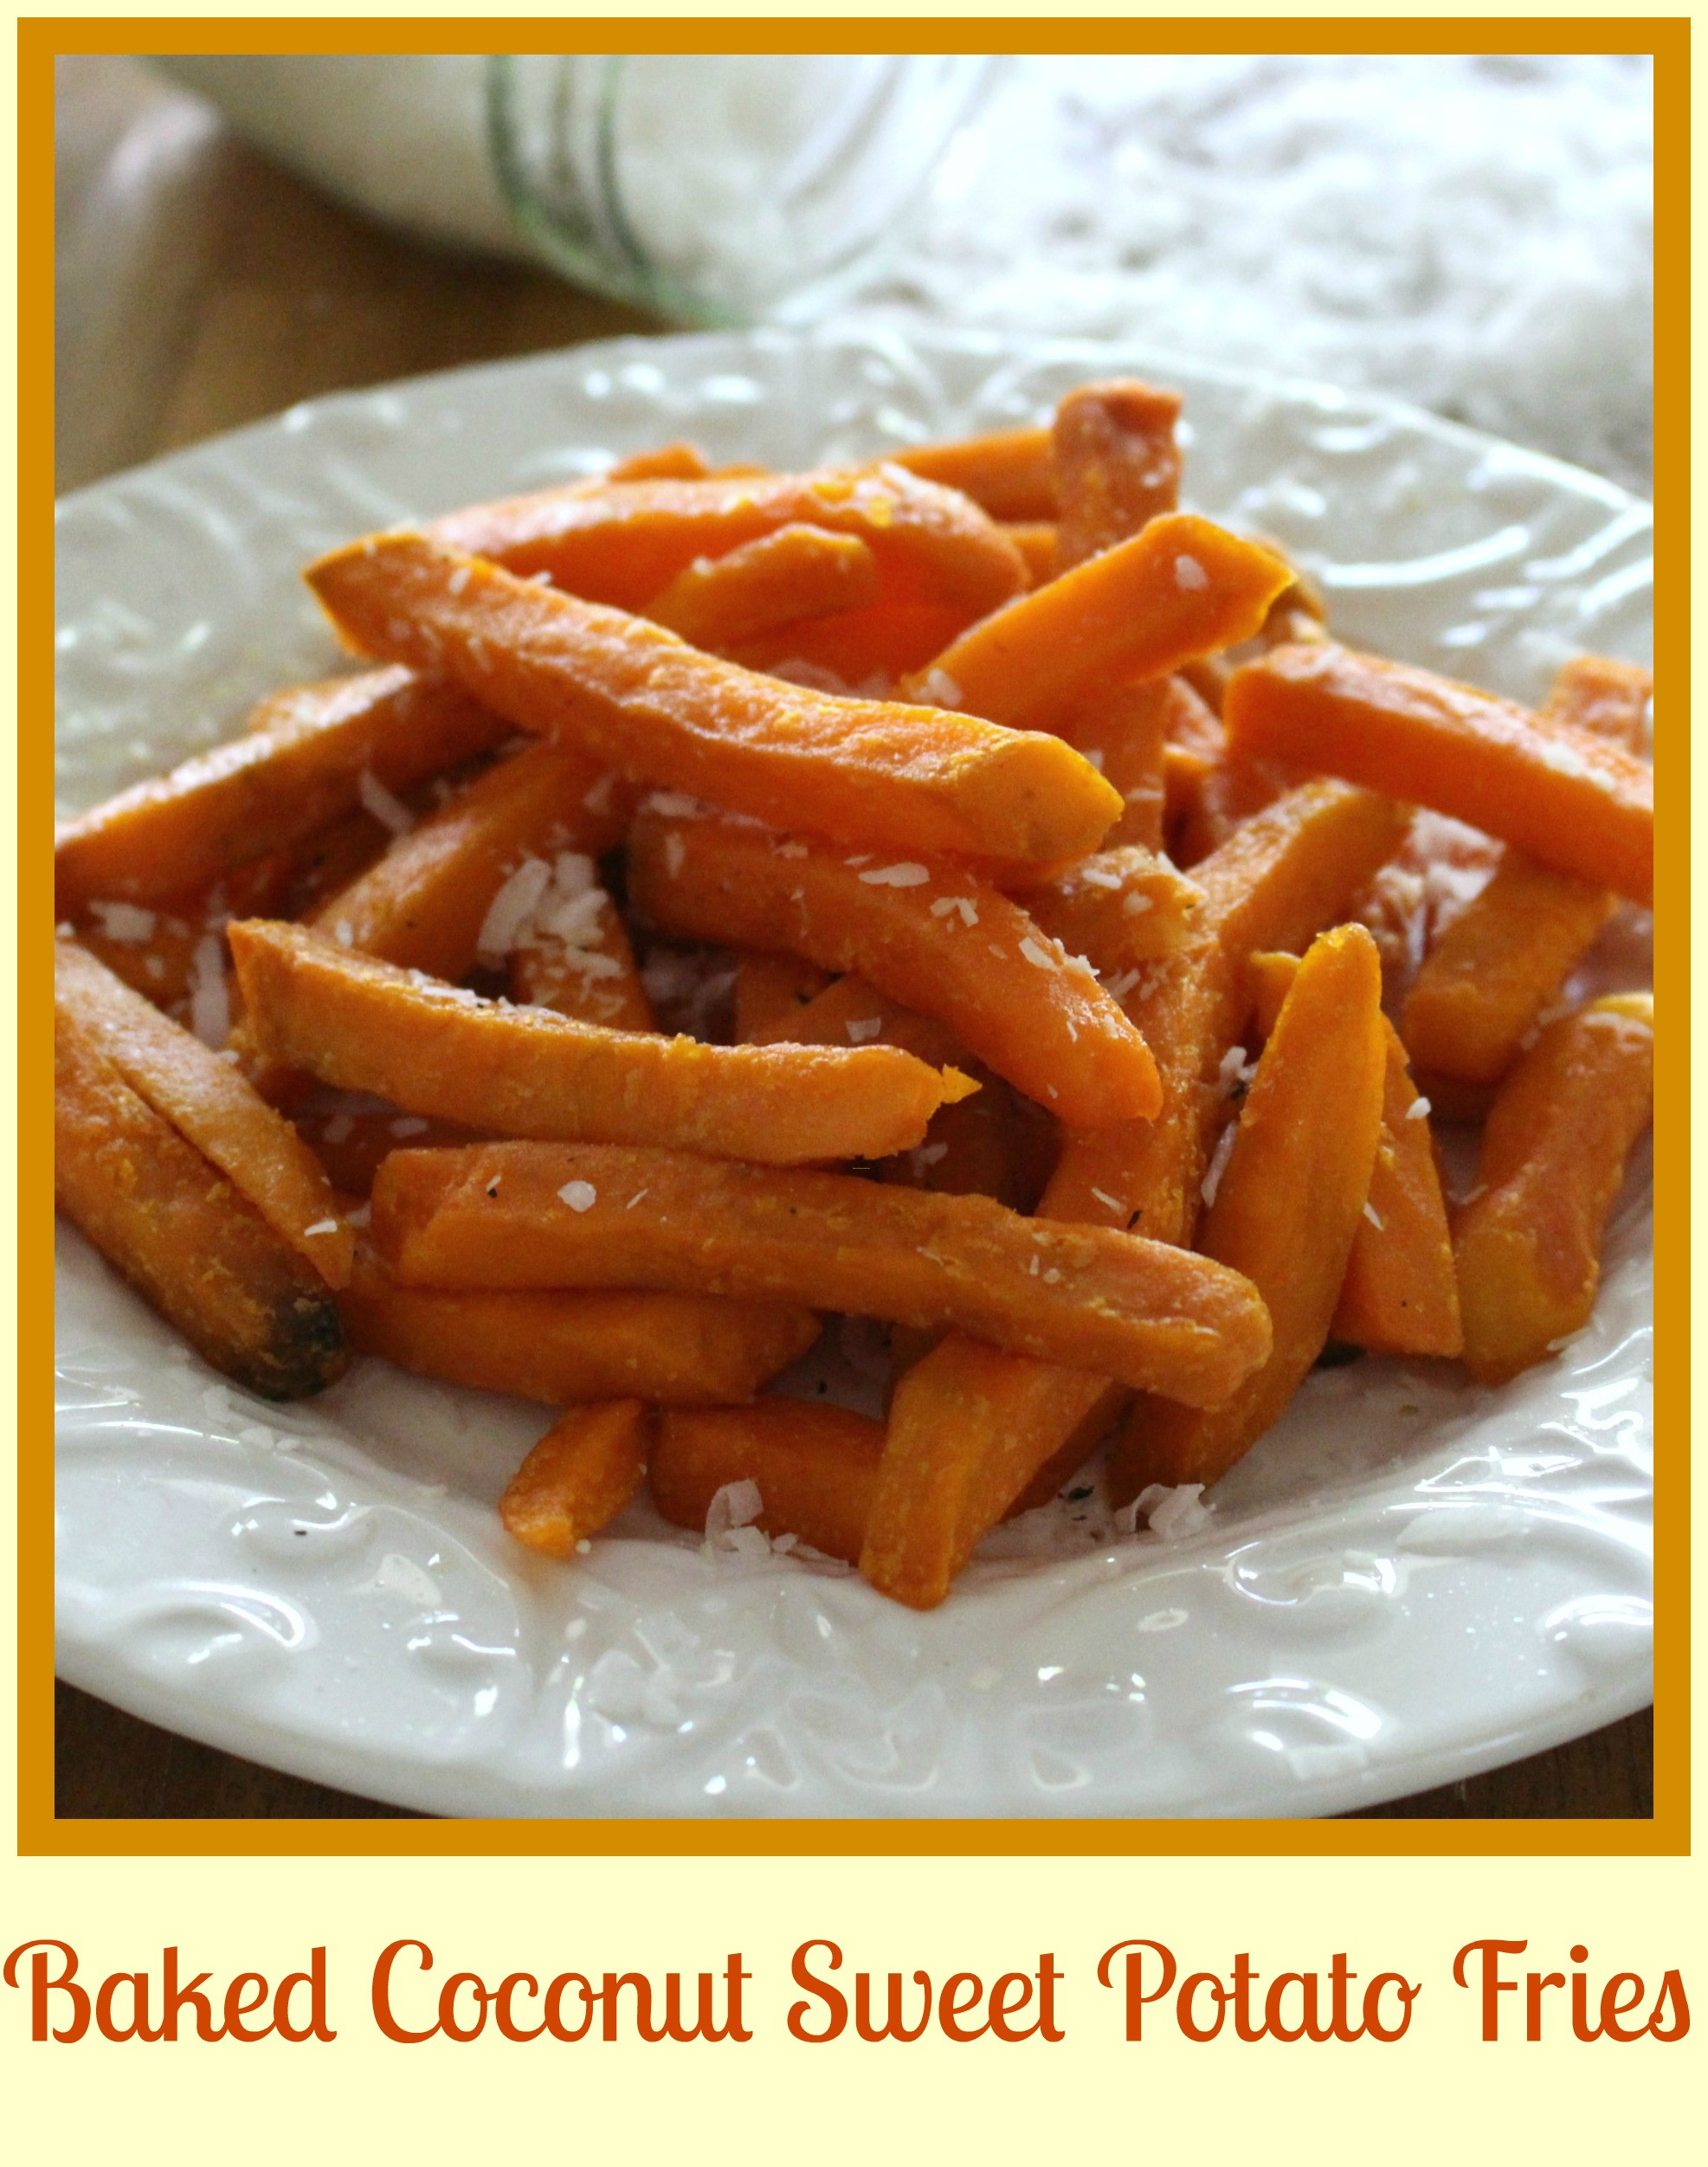 Sweet Potato Fries Calories  Baked Coconut Sweet Potato Fries Skinny Sweets Daily